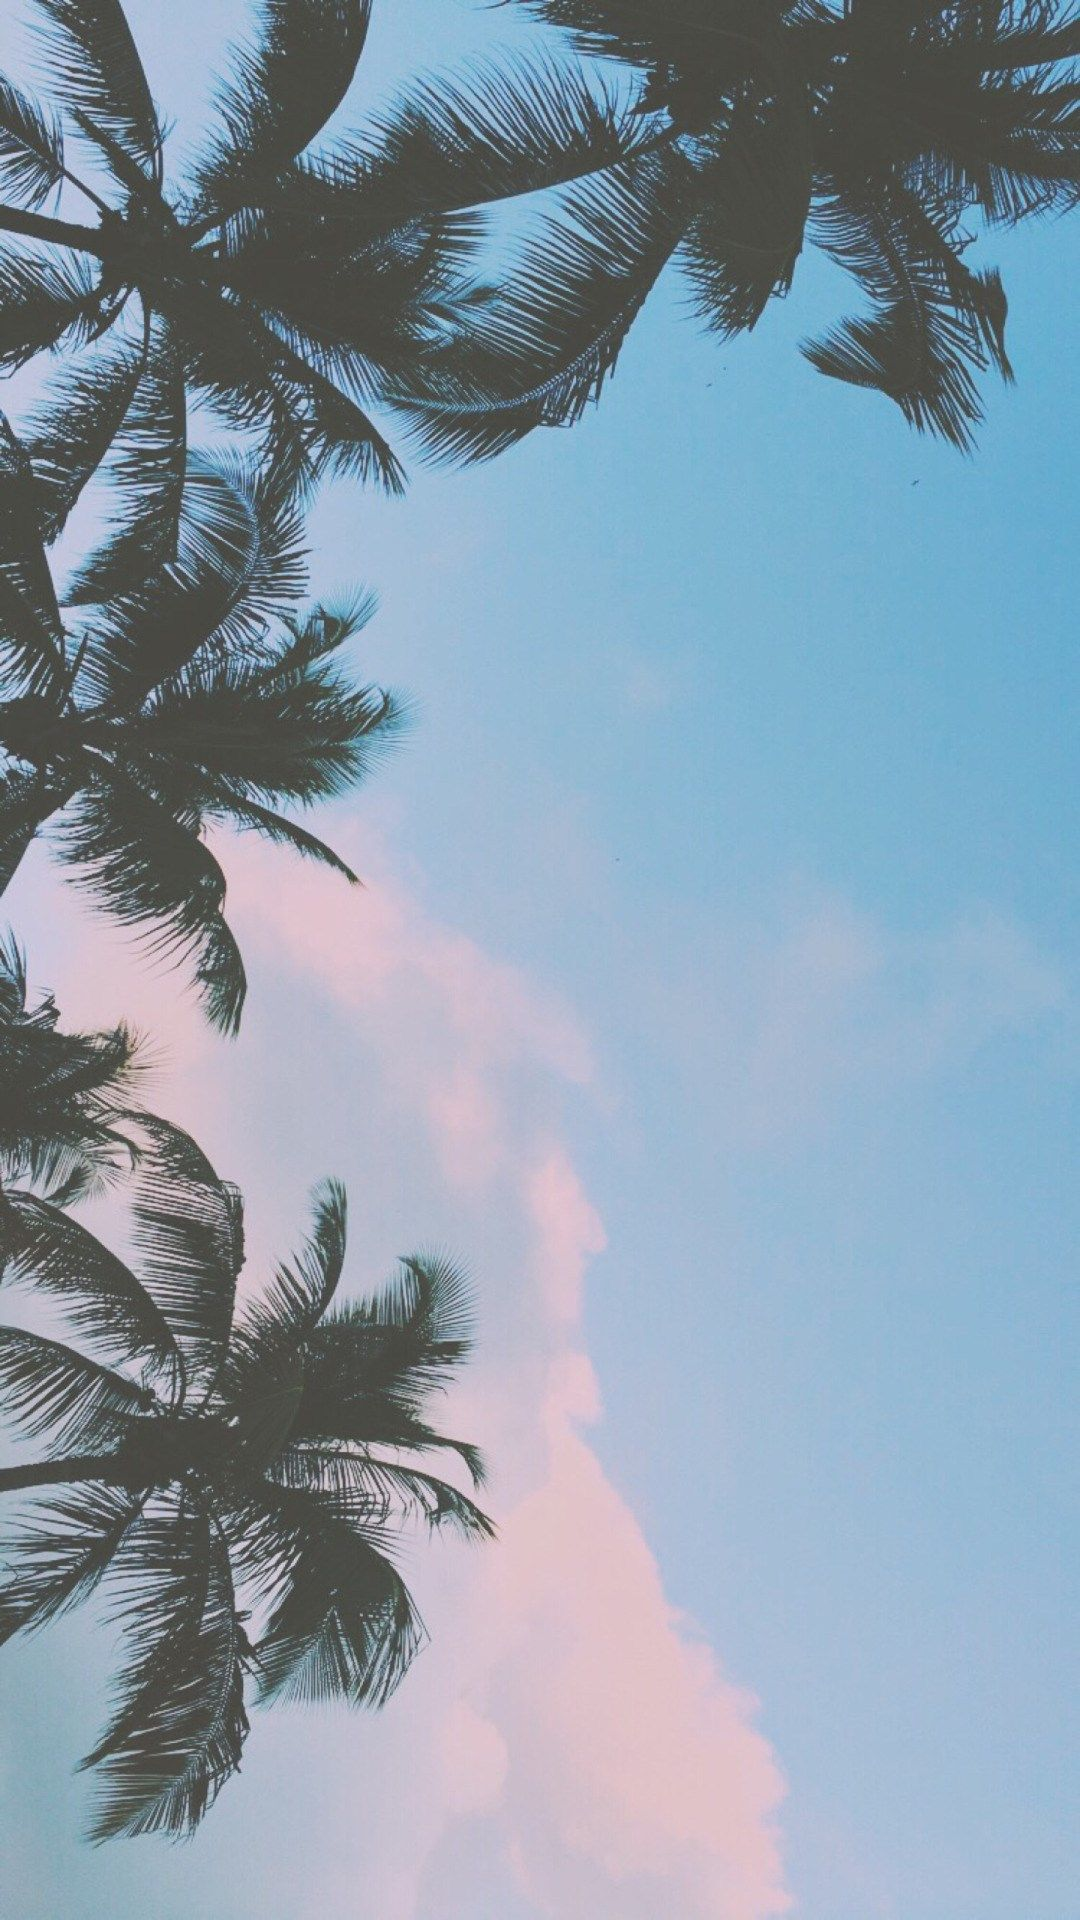 Tumblr iphone wallpaper sky - Awesome Iphone Wallpaper Swag Tumblr 39